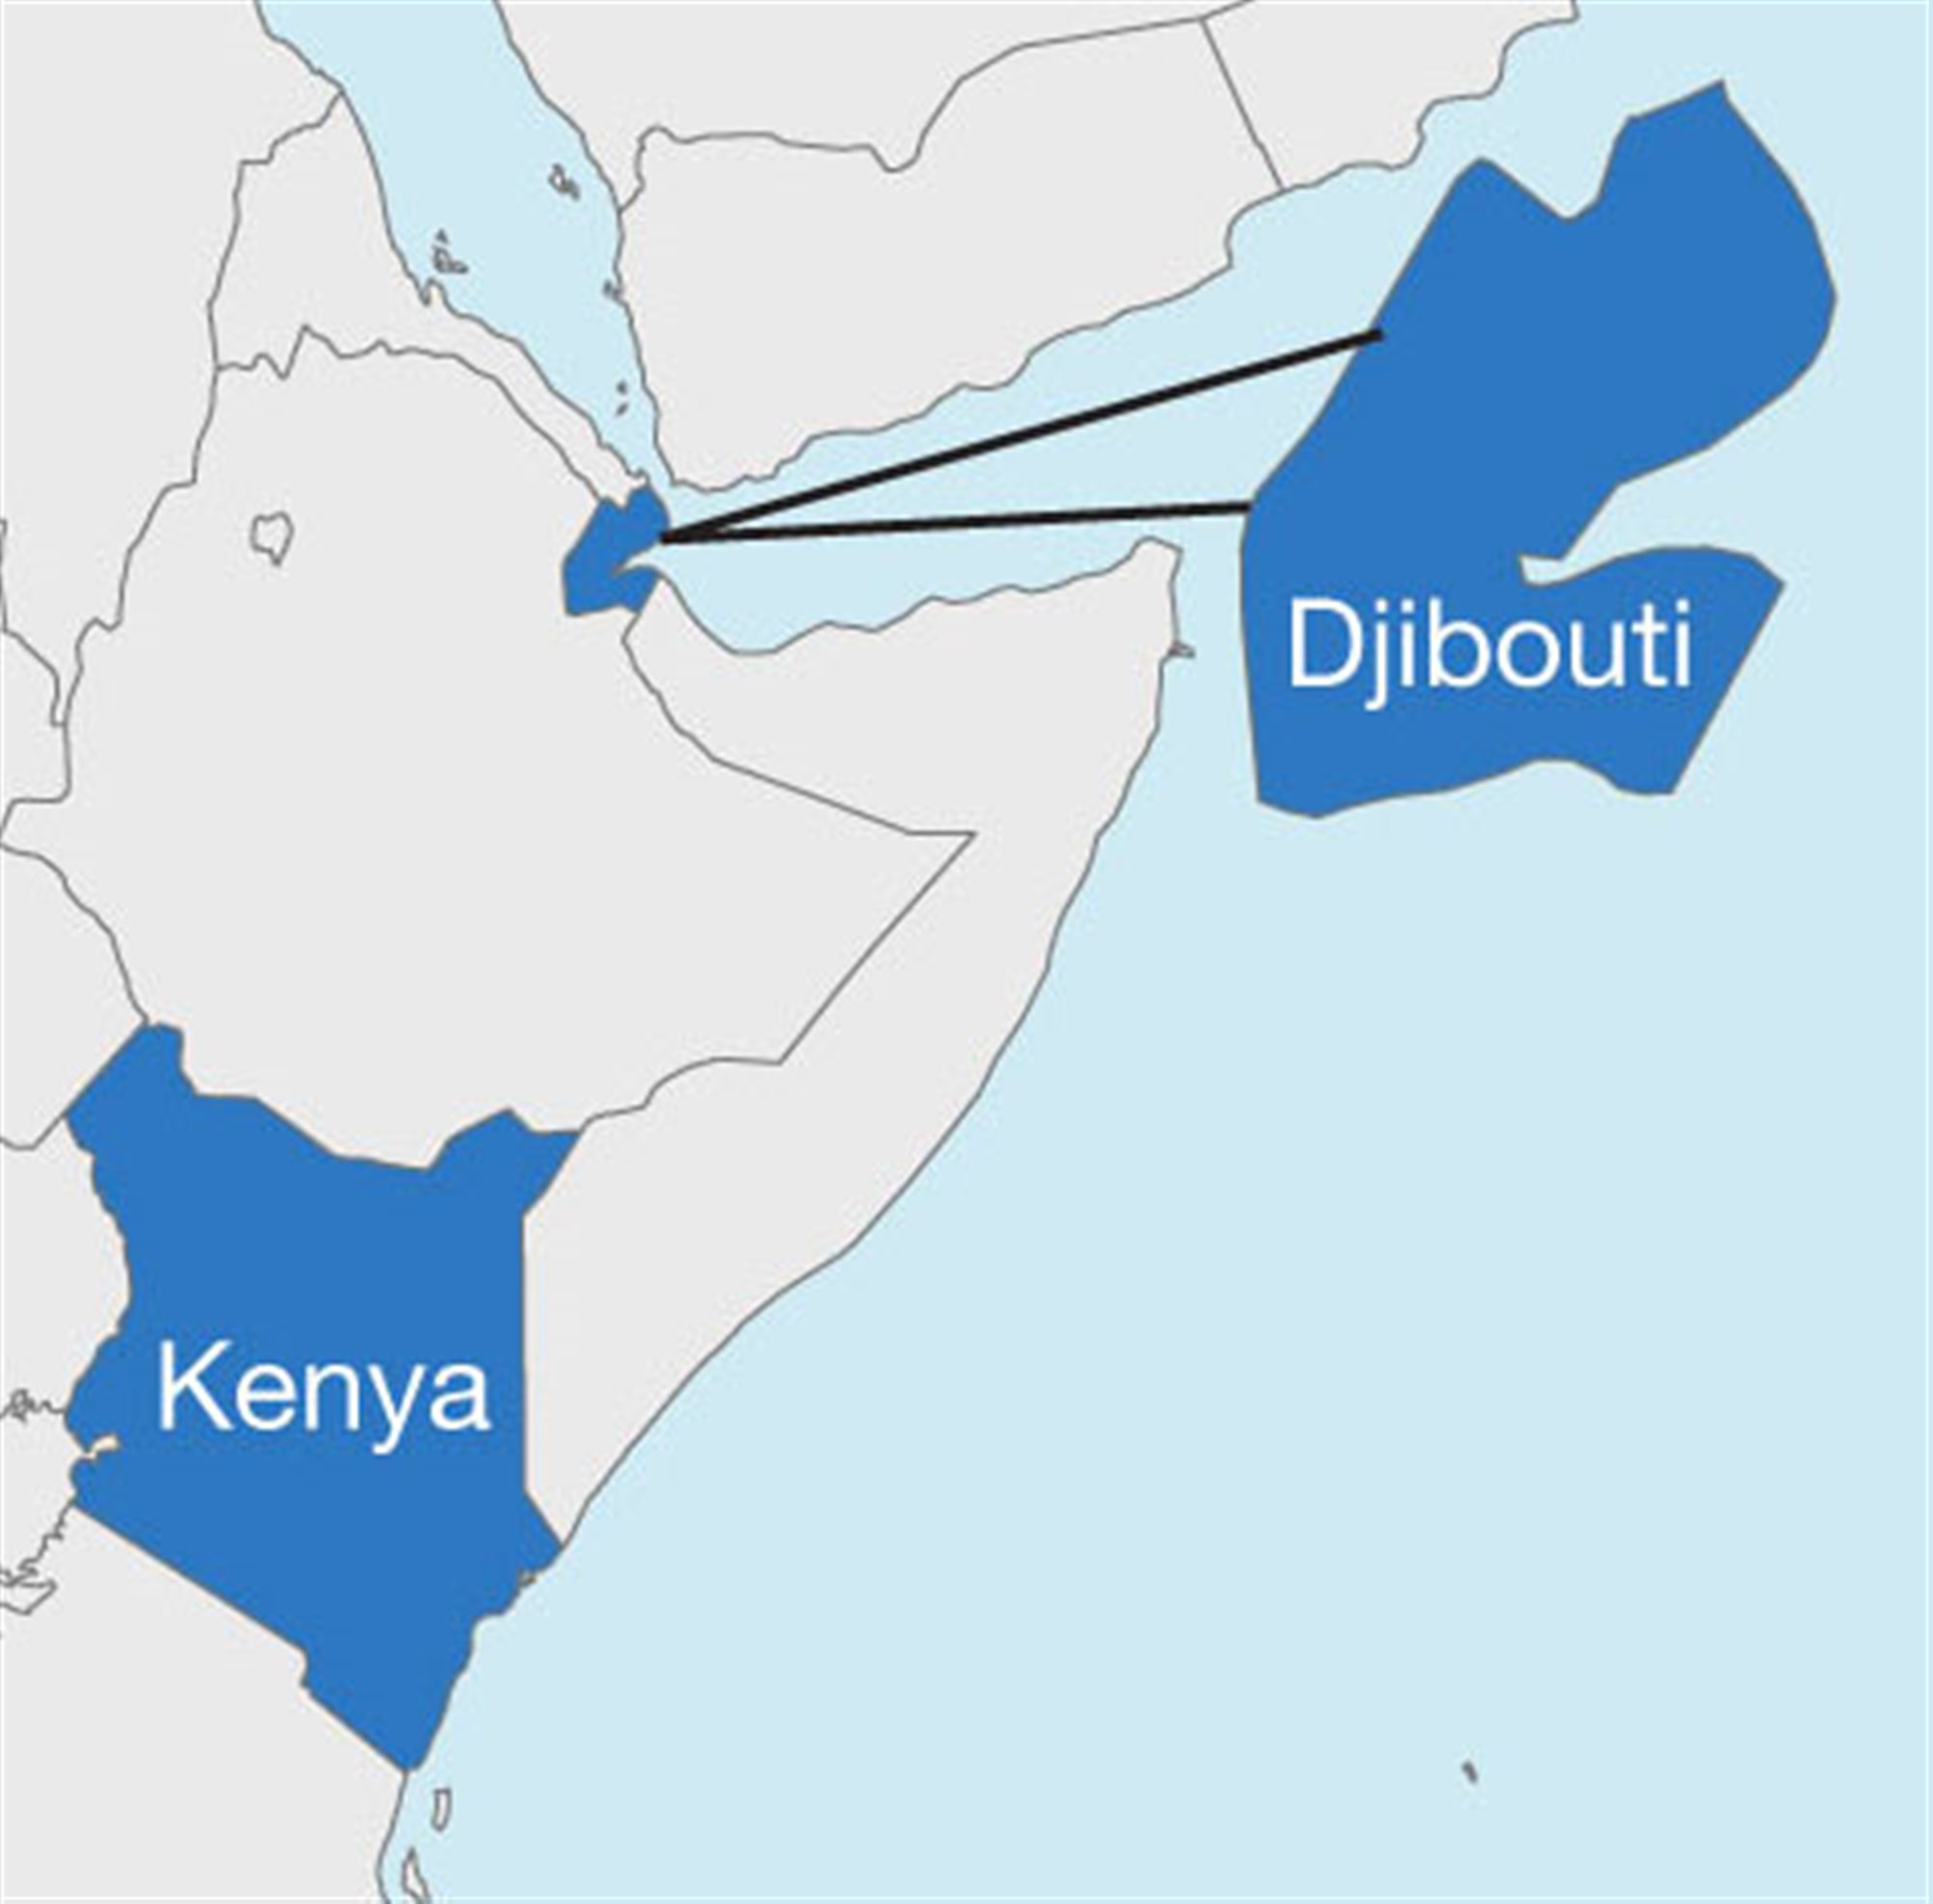 Kenya and Djibouti represent the first East Africa nations to join the National Guard Bureau's State Partnership Program.